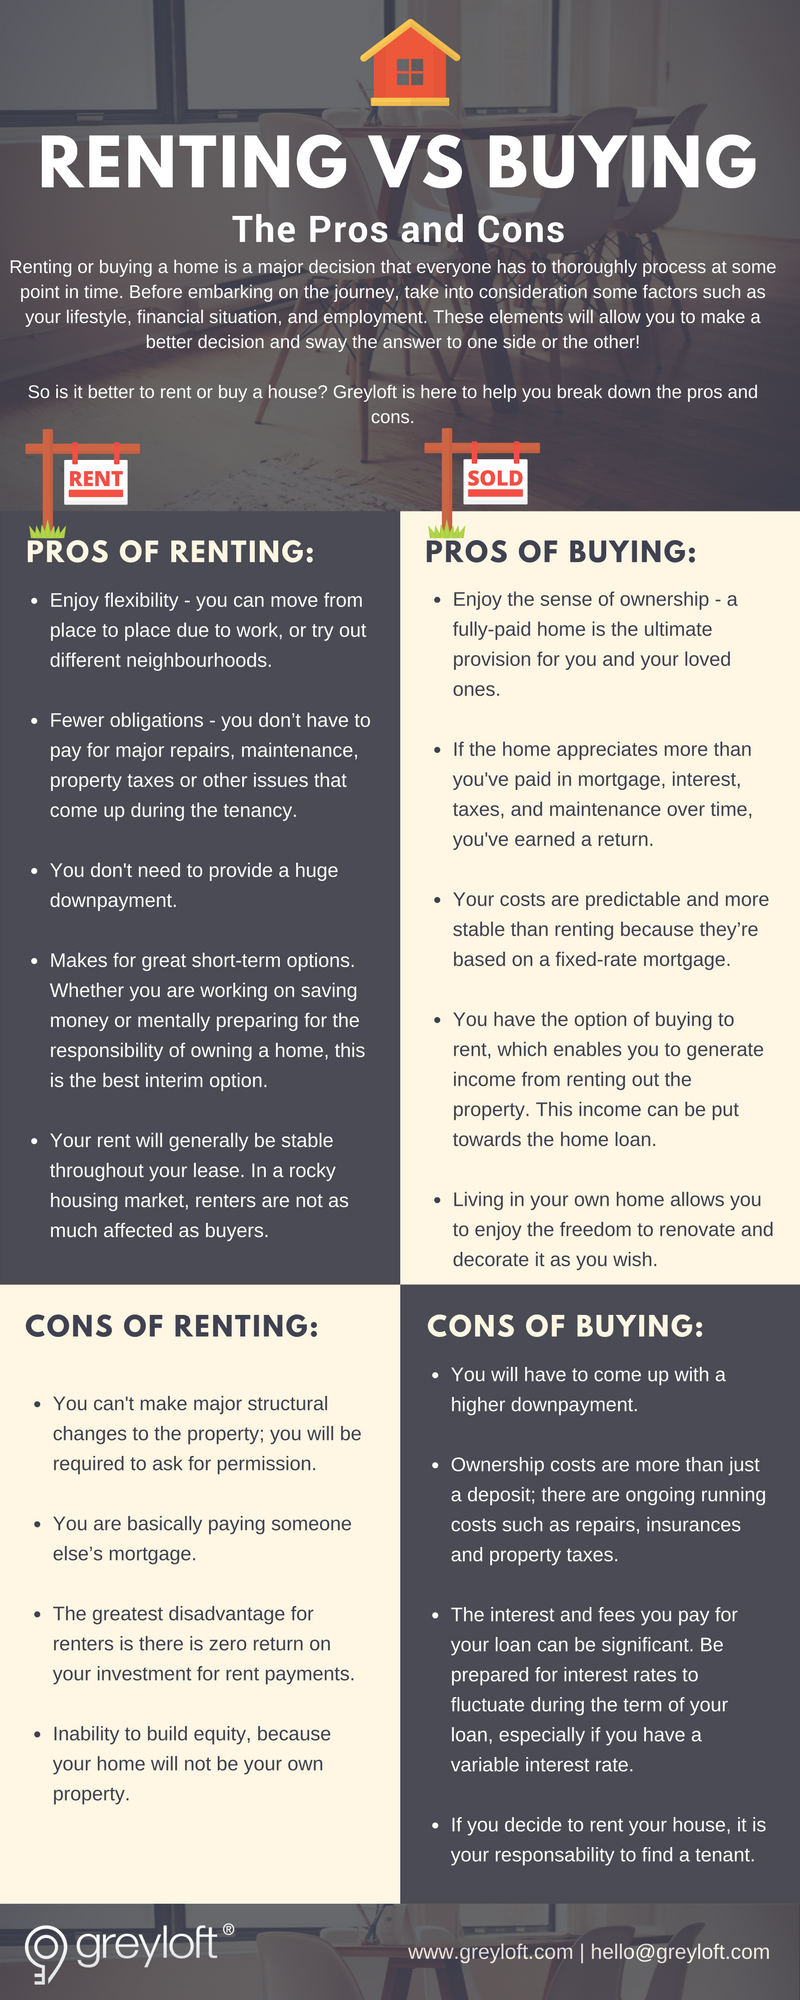 Singapore Property Renting Vs Buying The Pros And Cons Infographic Rent Vs Buy Renting Vs Buying Home Real Estate Buying